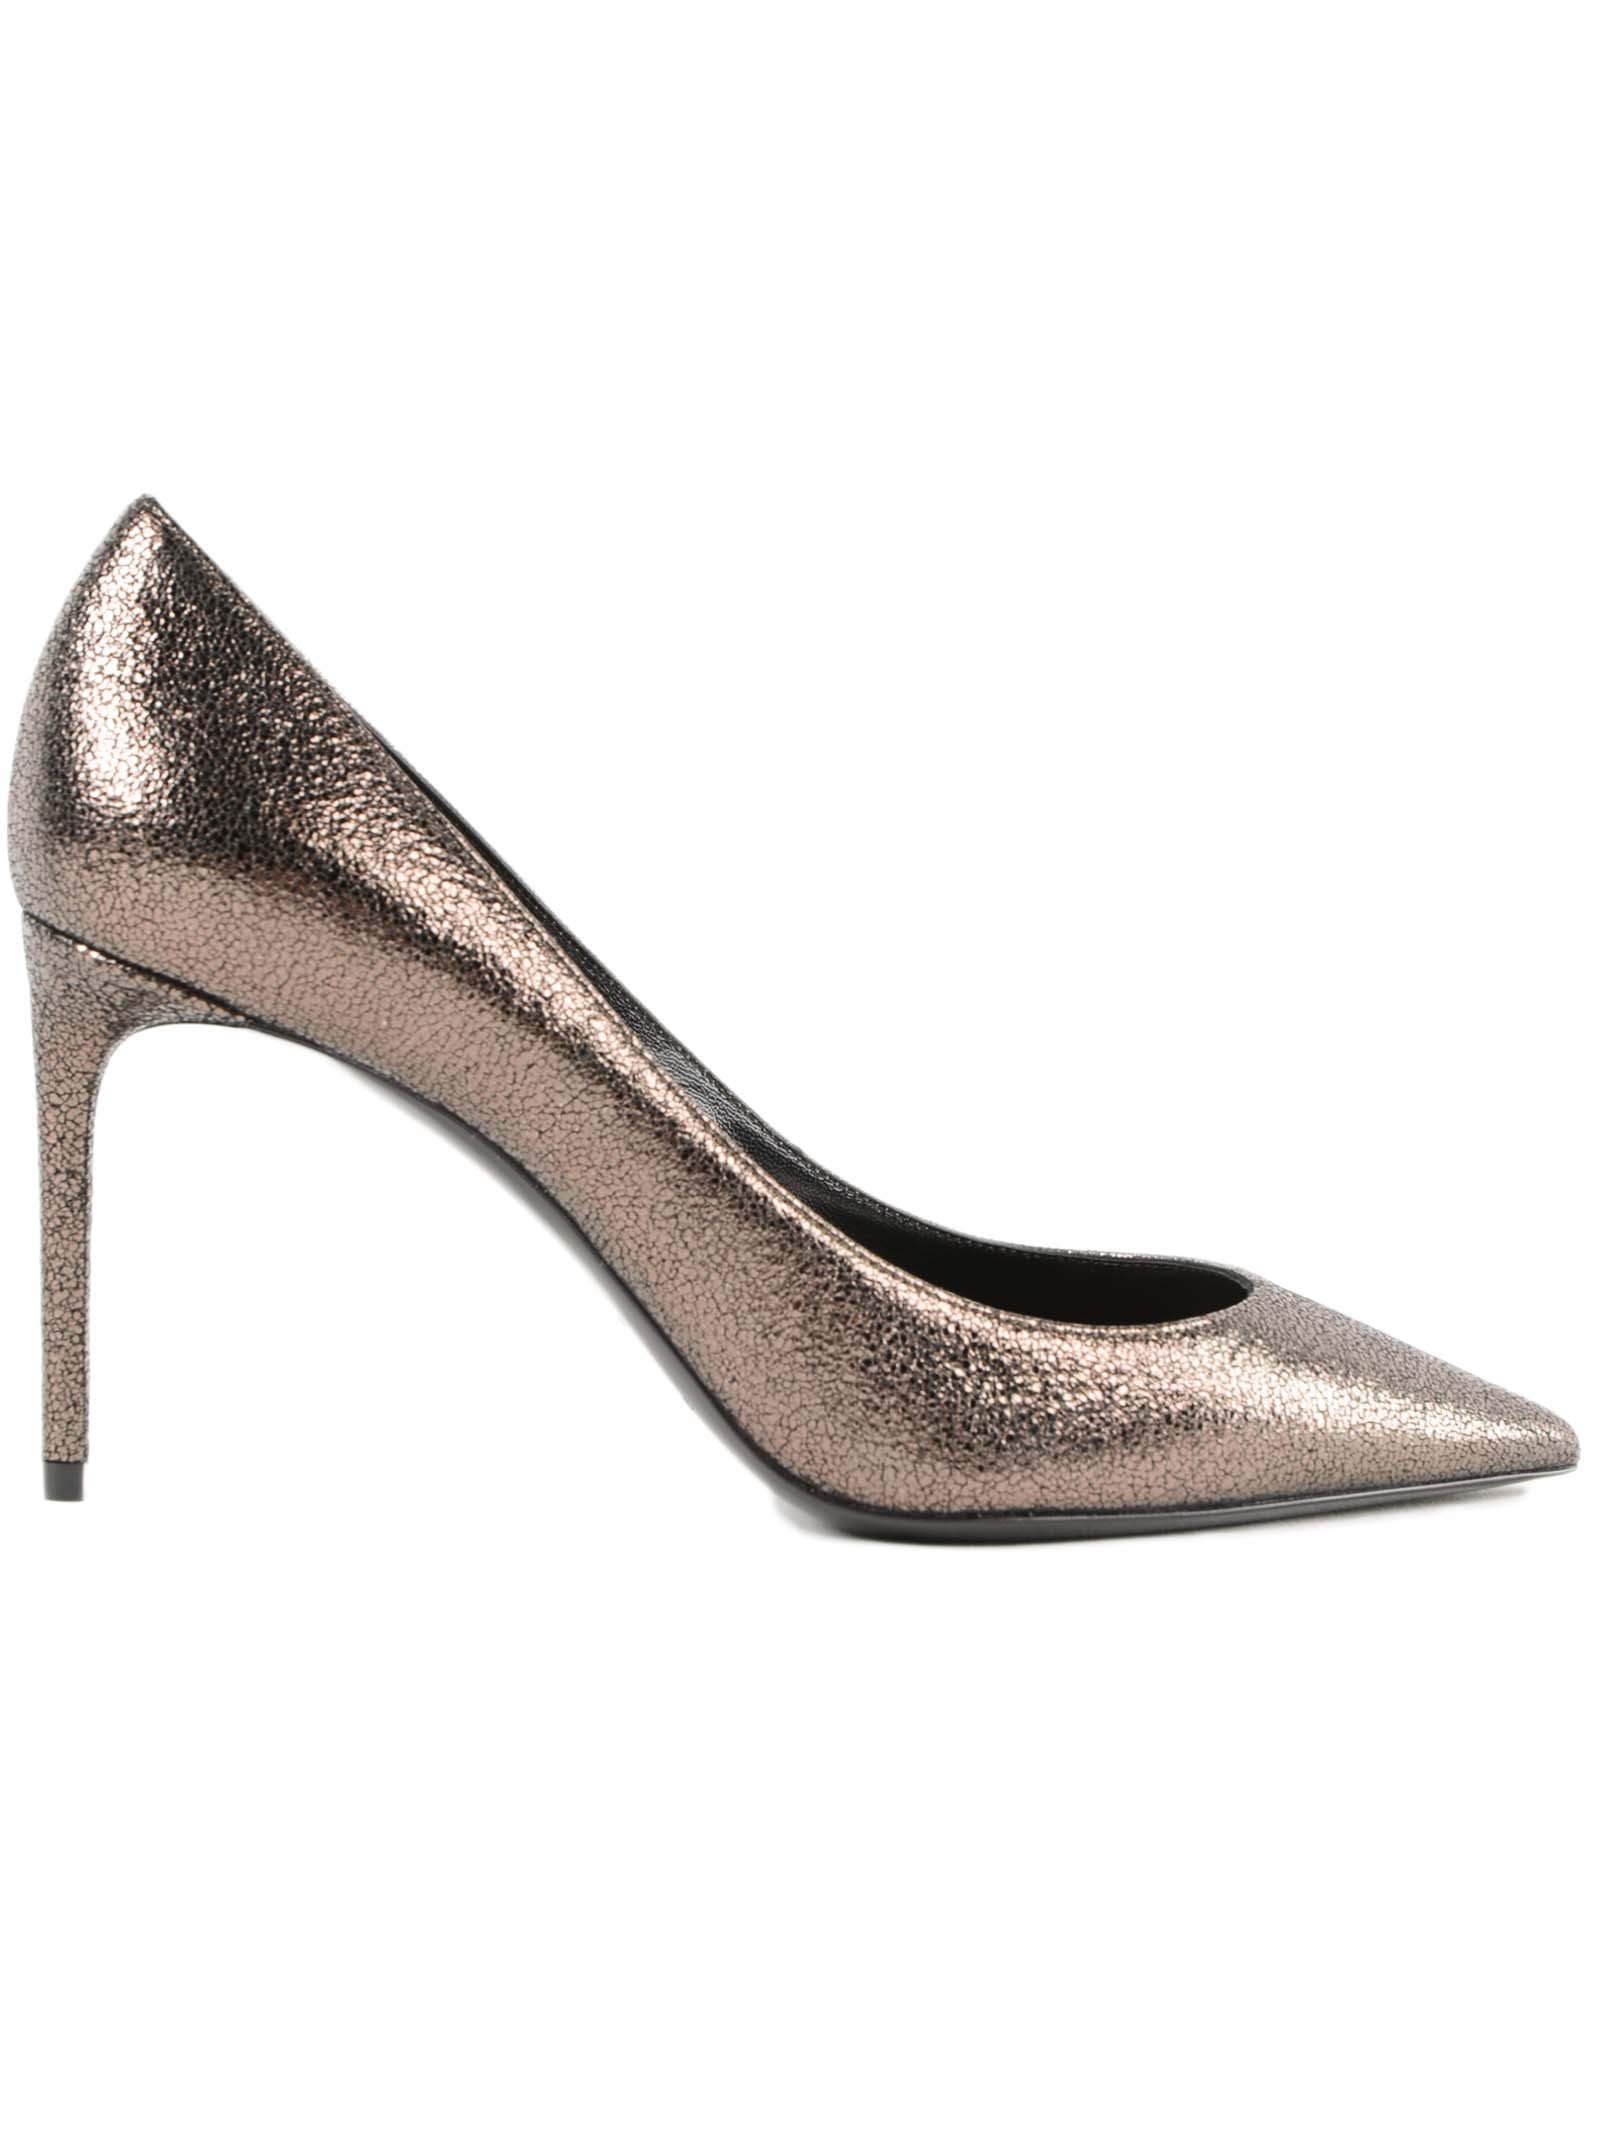 Saint Laurent Zoe Pumps